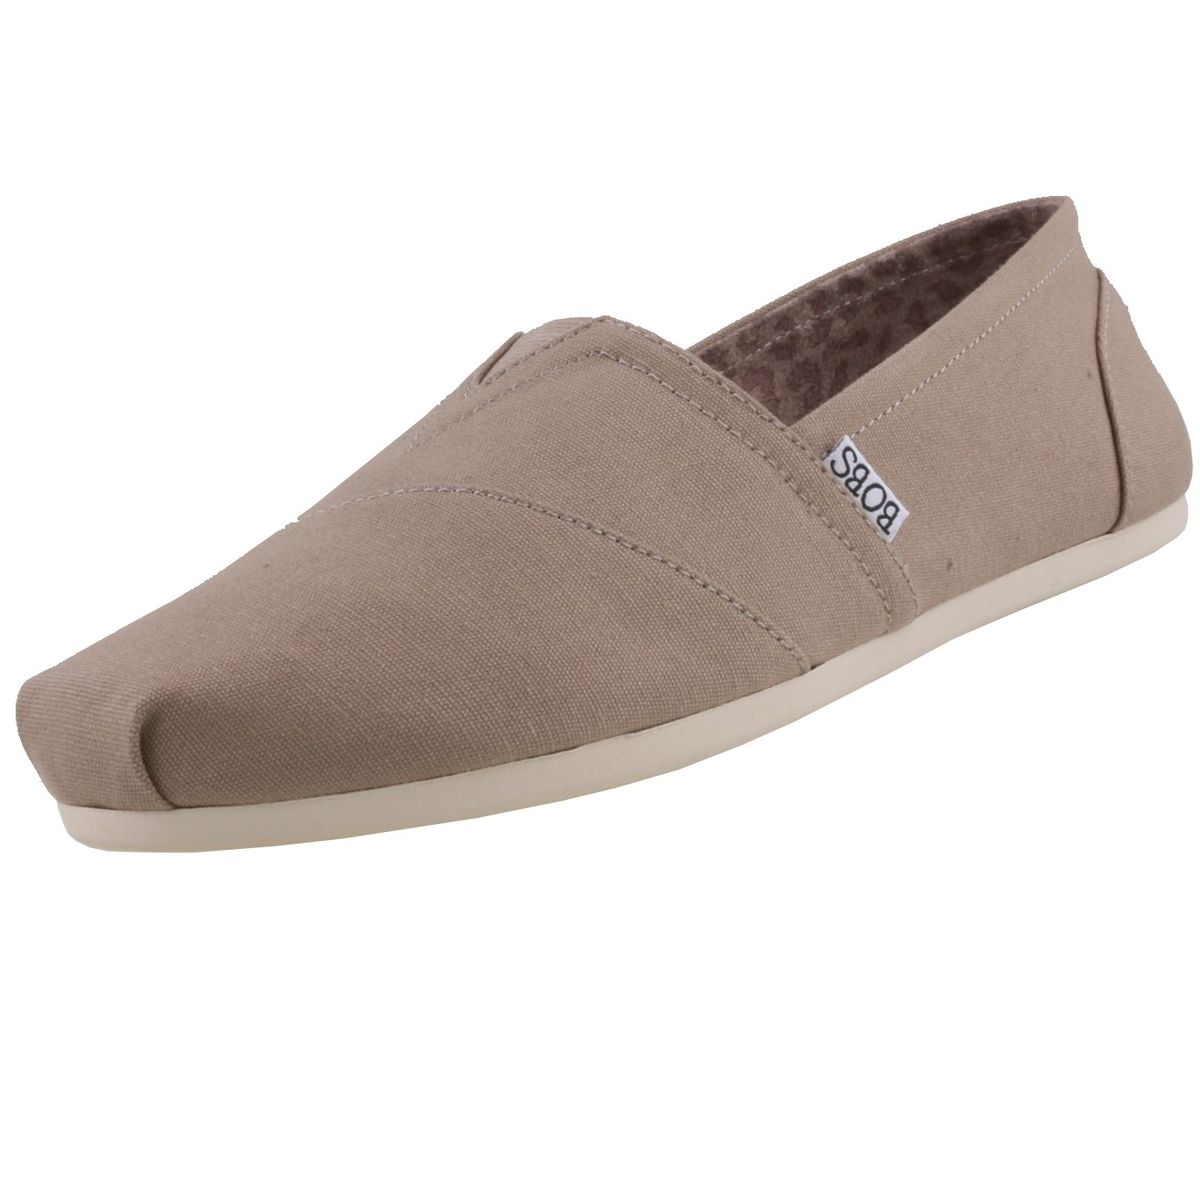 Skechers Bobs Damen Slipper Plush PeaceLove Beige  Black